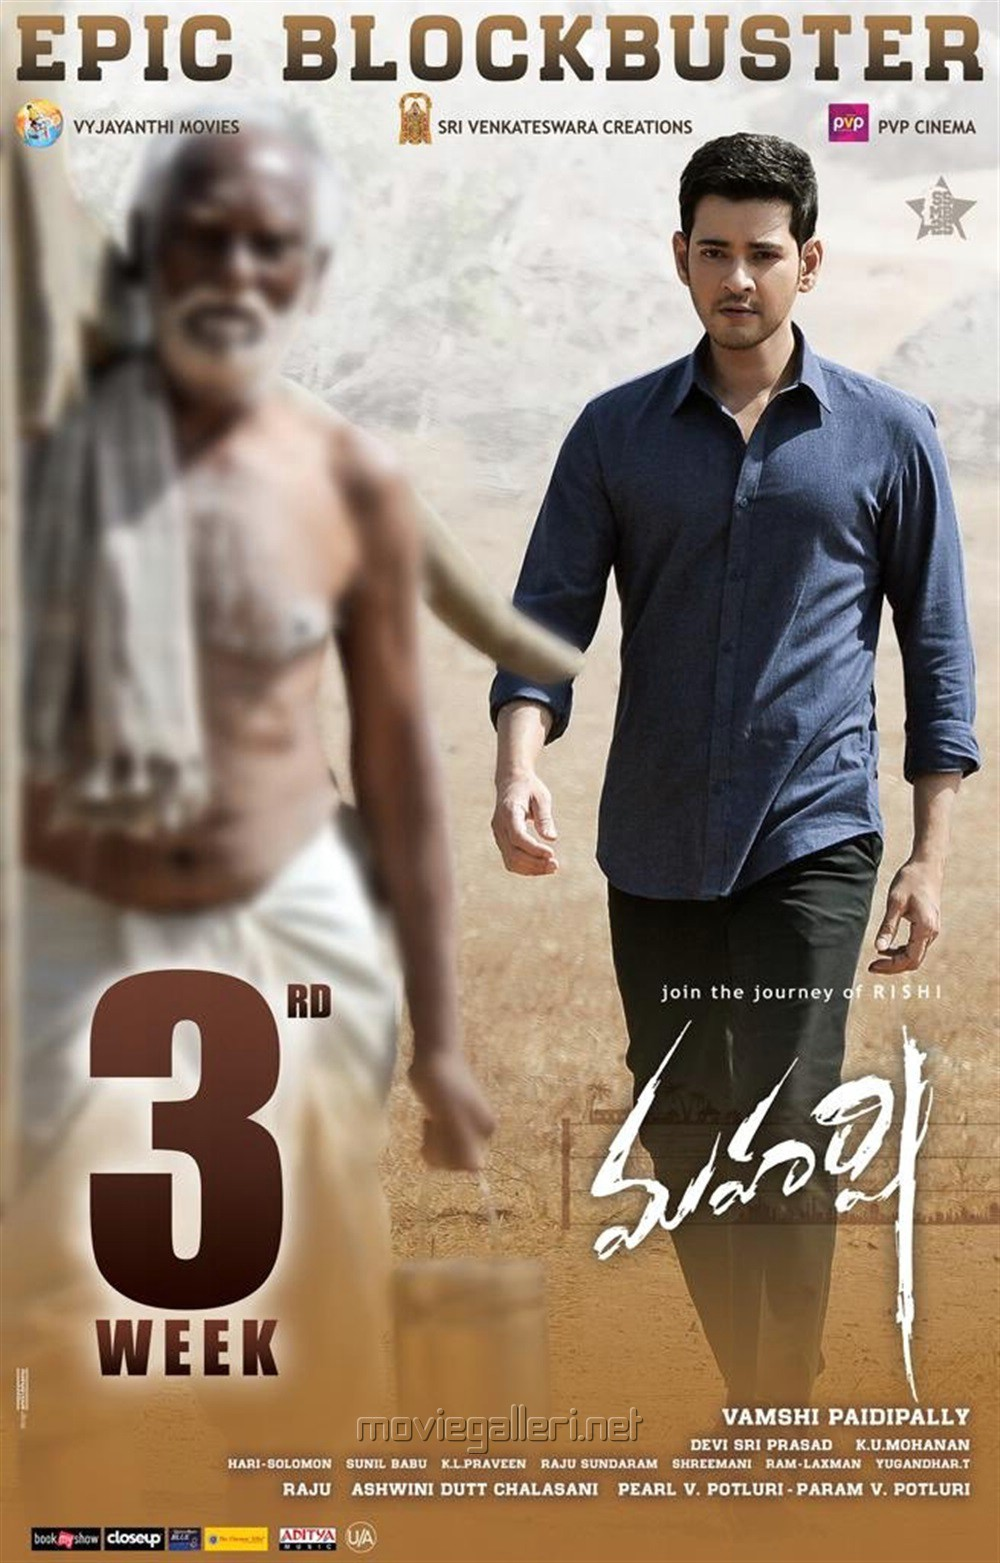 Guruswamy Mahesh Babu Maharshi Movie 3rd Week Posters